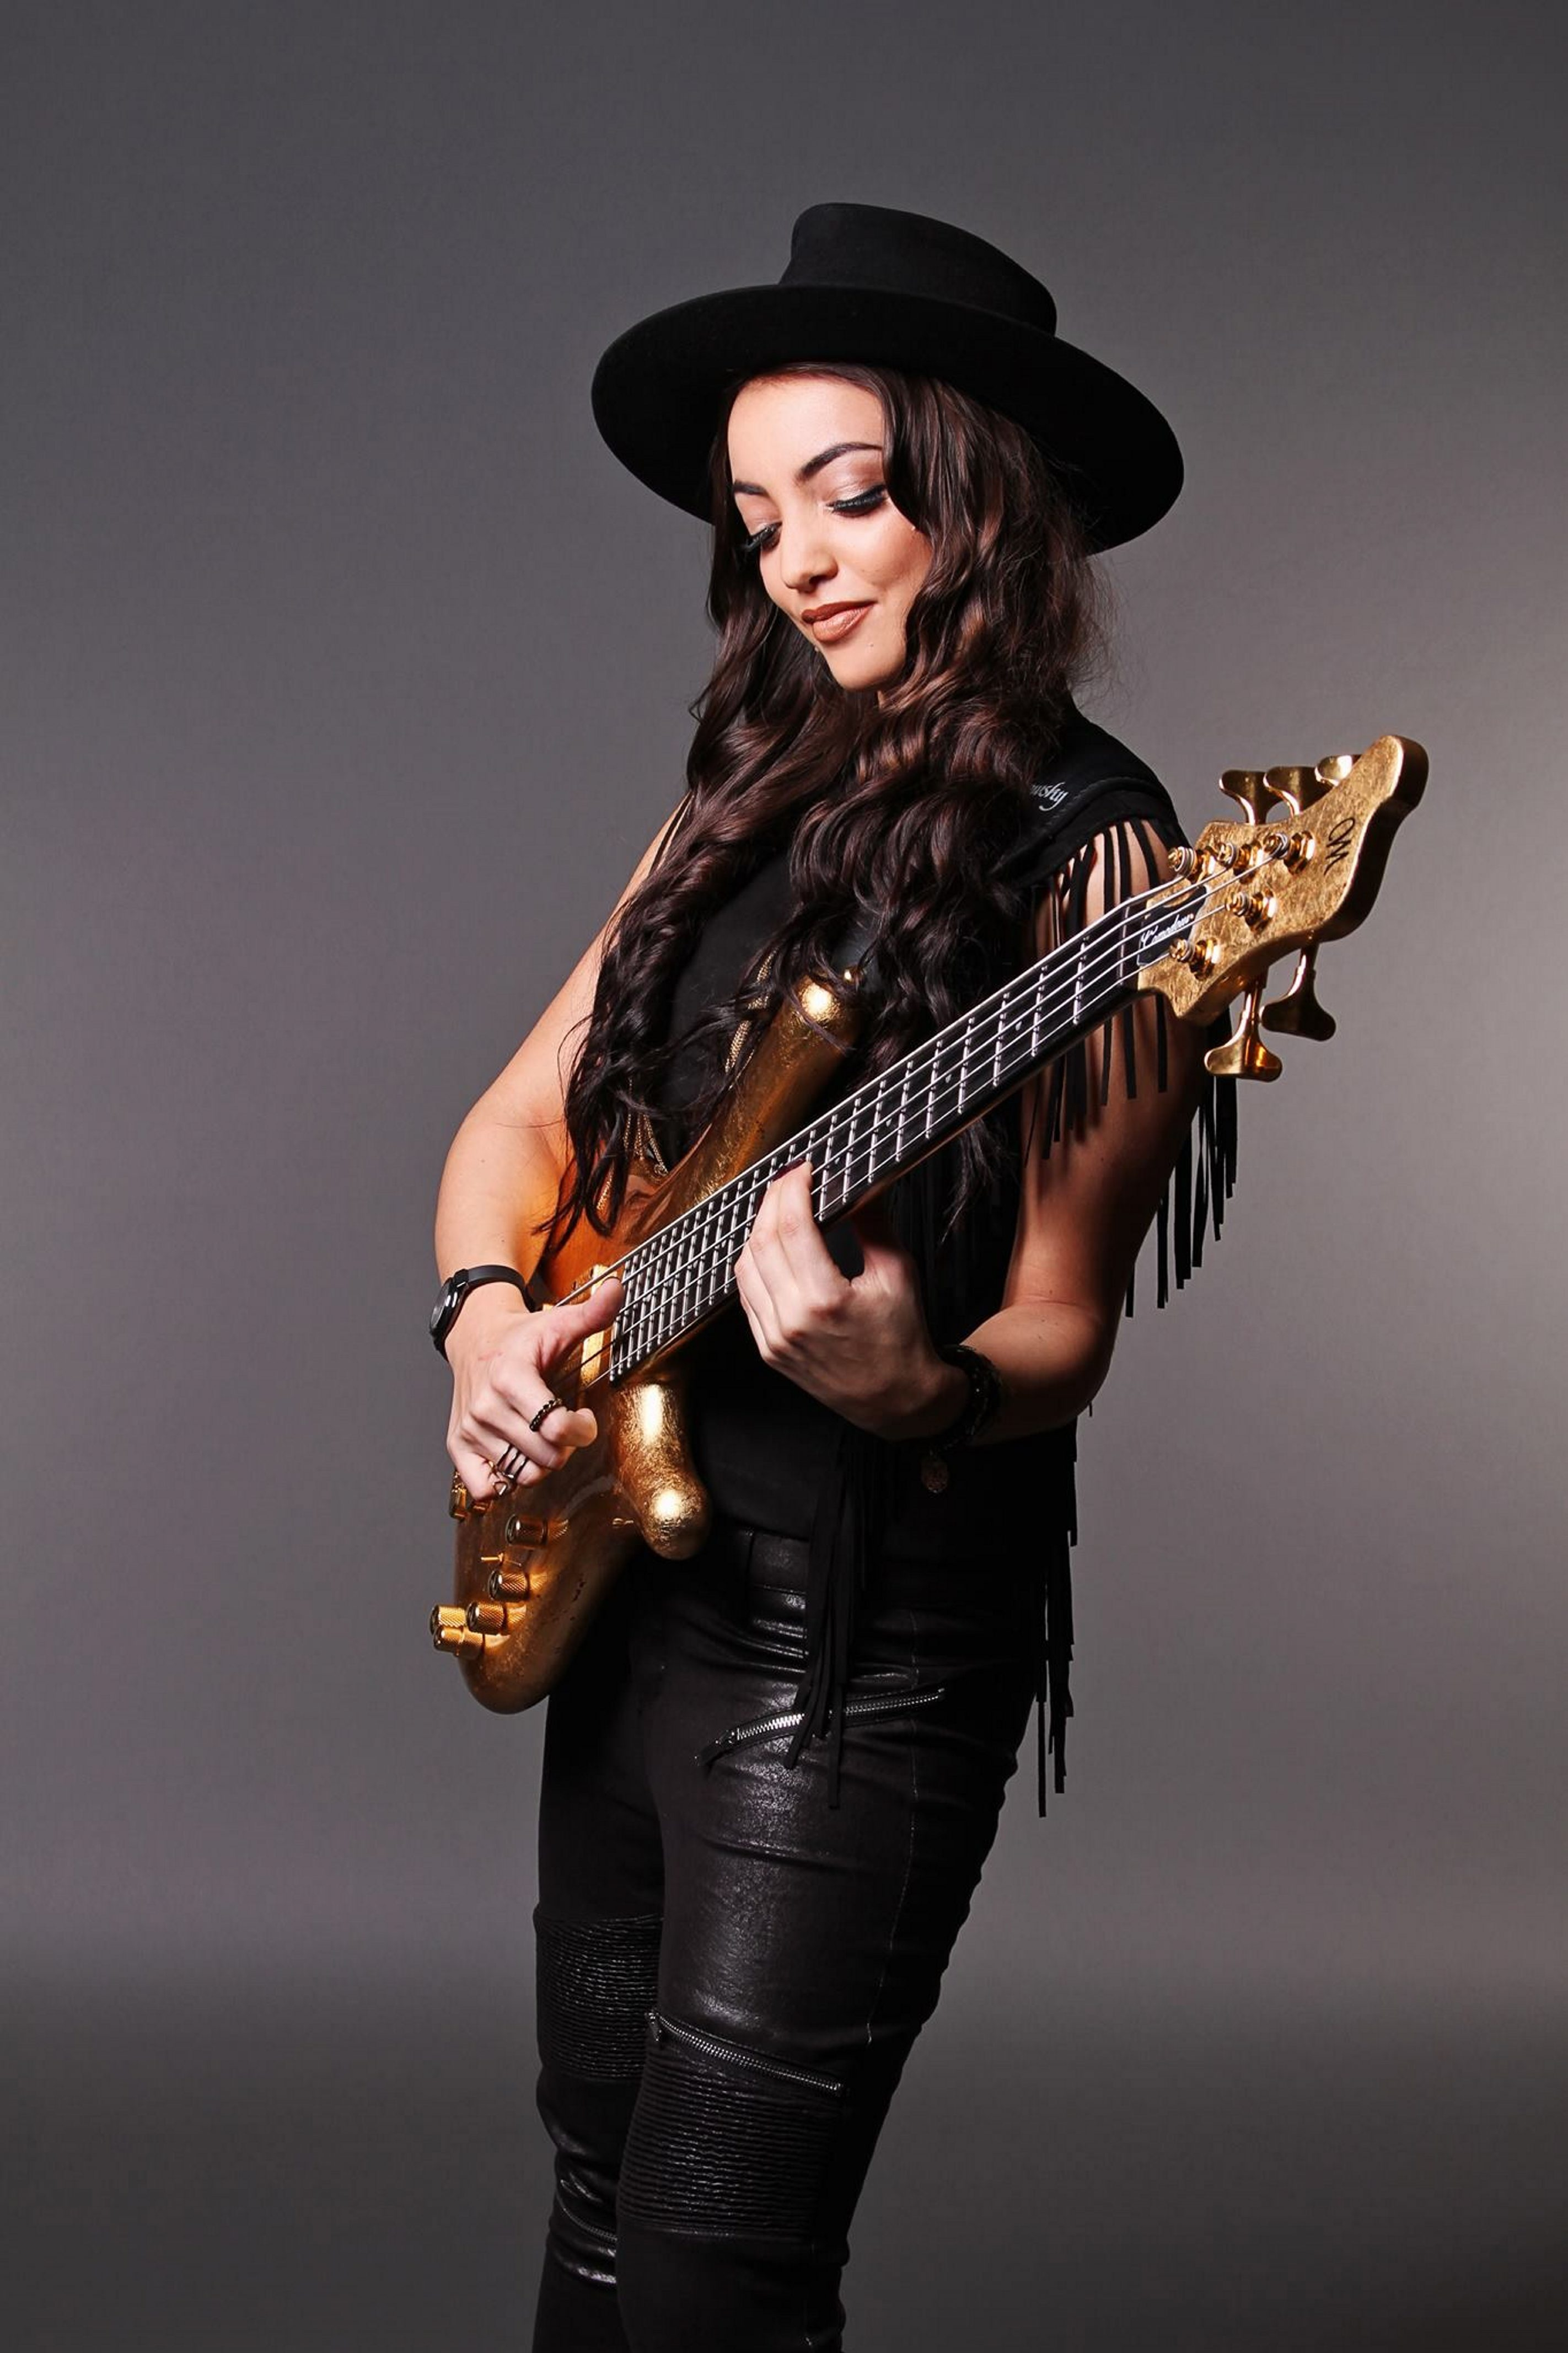 Bassist and YouTube sensation Alissia was one of the most buzzed-about artists at this year's NAMM convention.